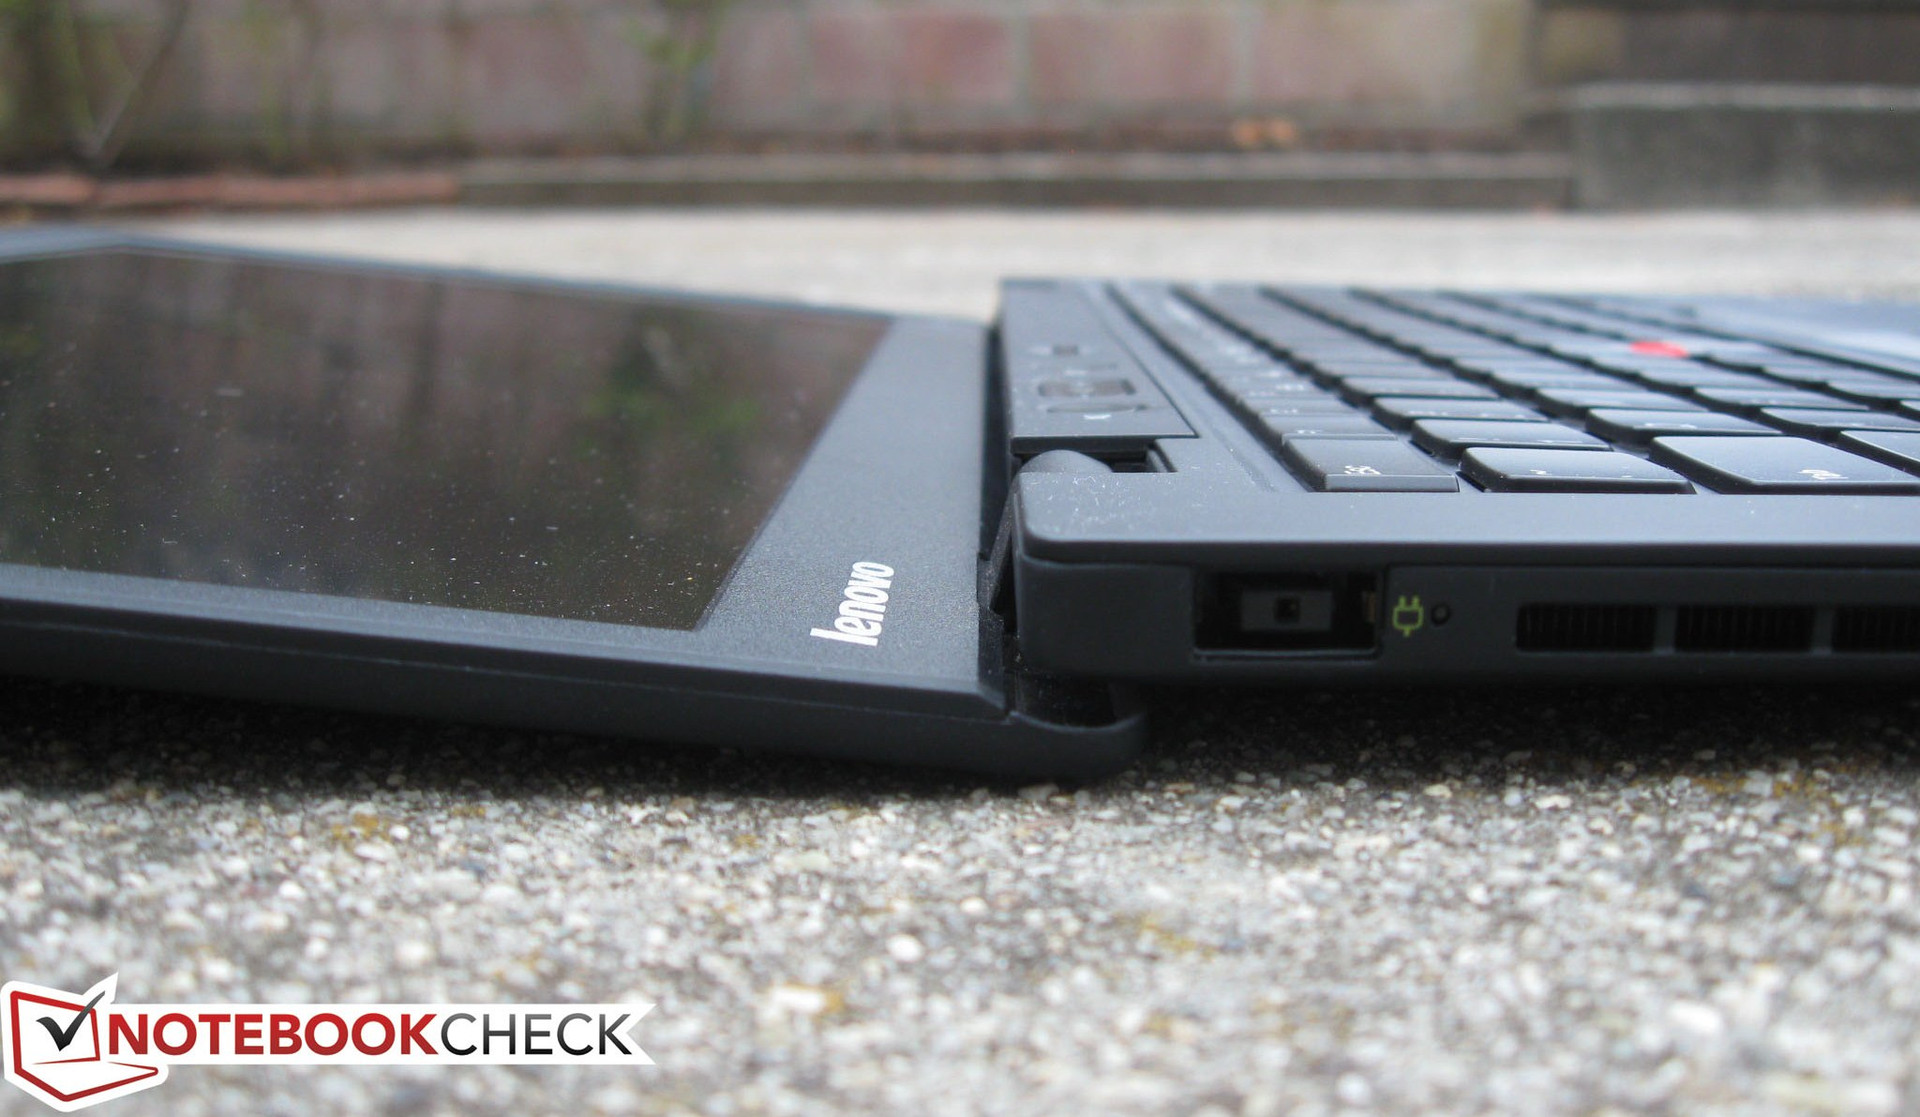 Review Lenovo ThinkPad X1 Carbon Ultrabook - NotebookCheck